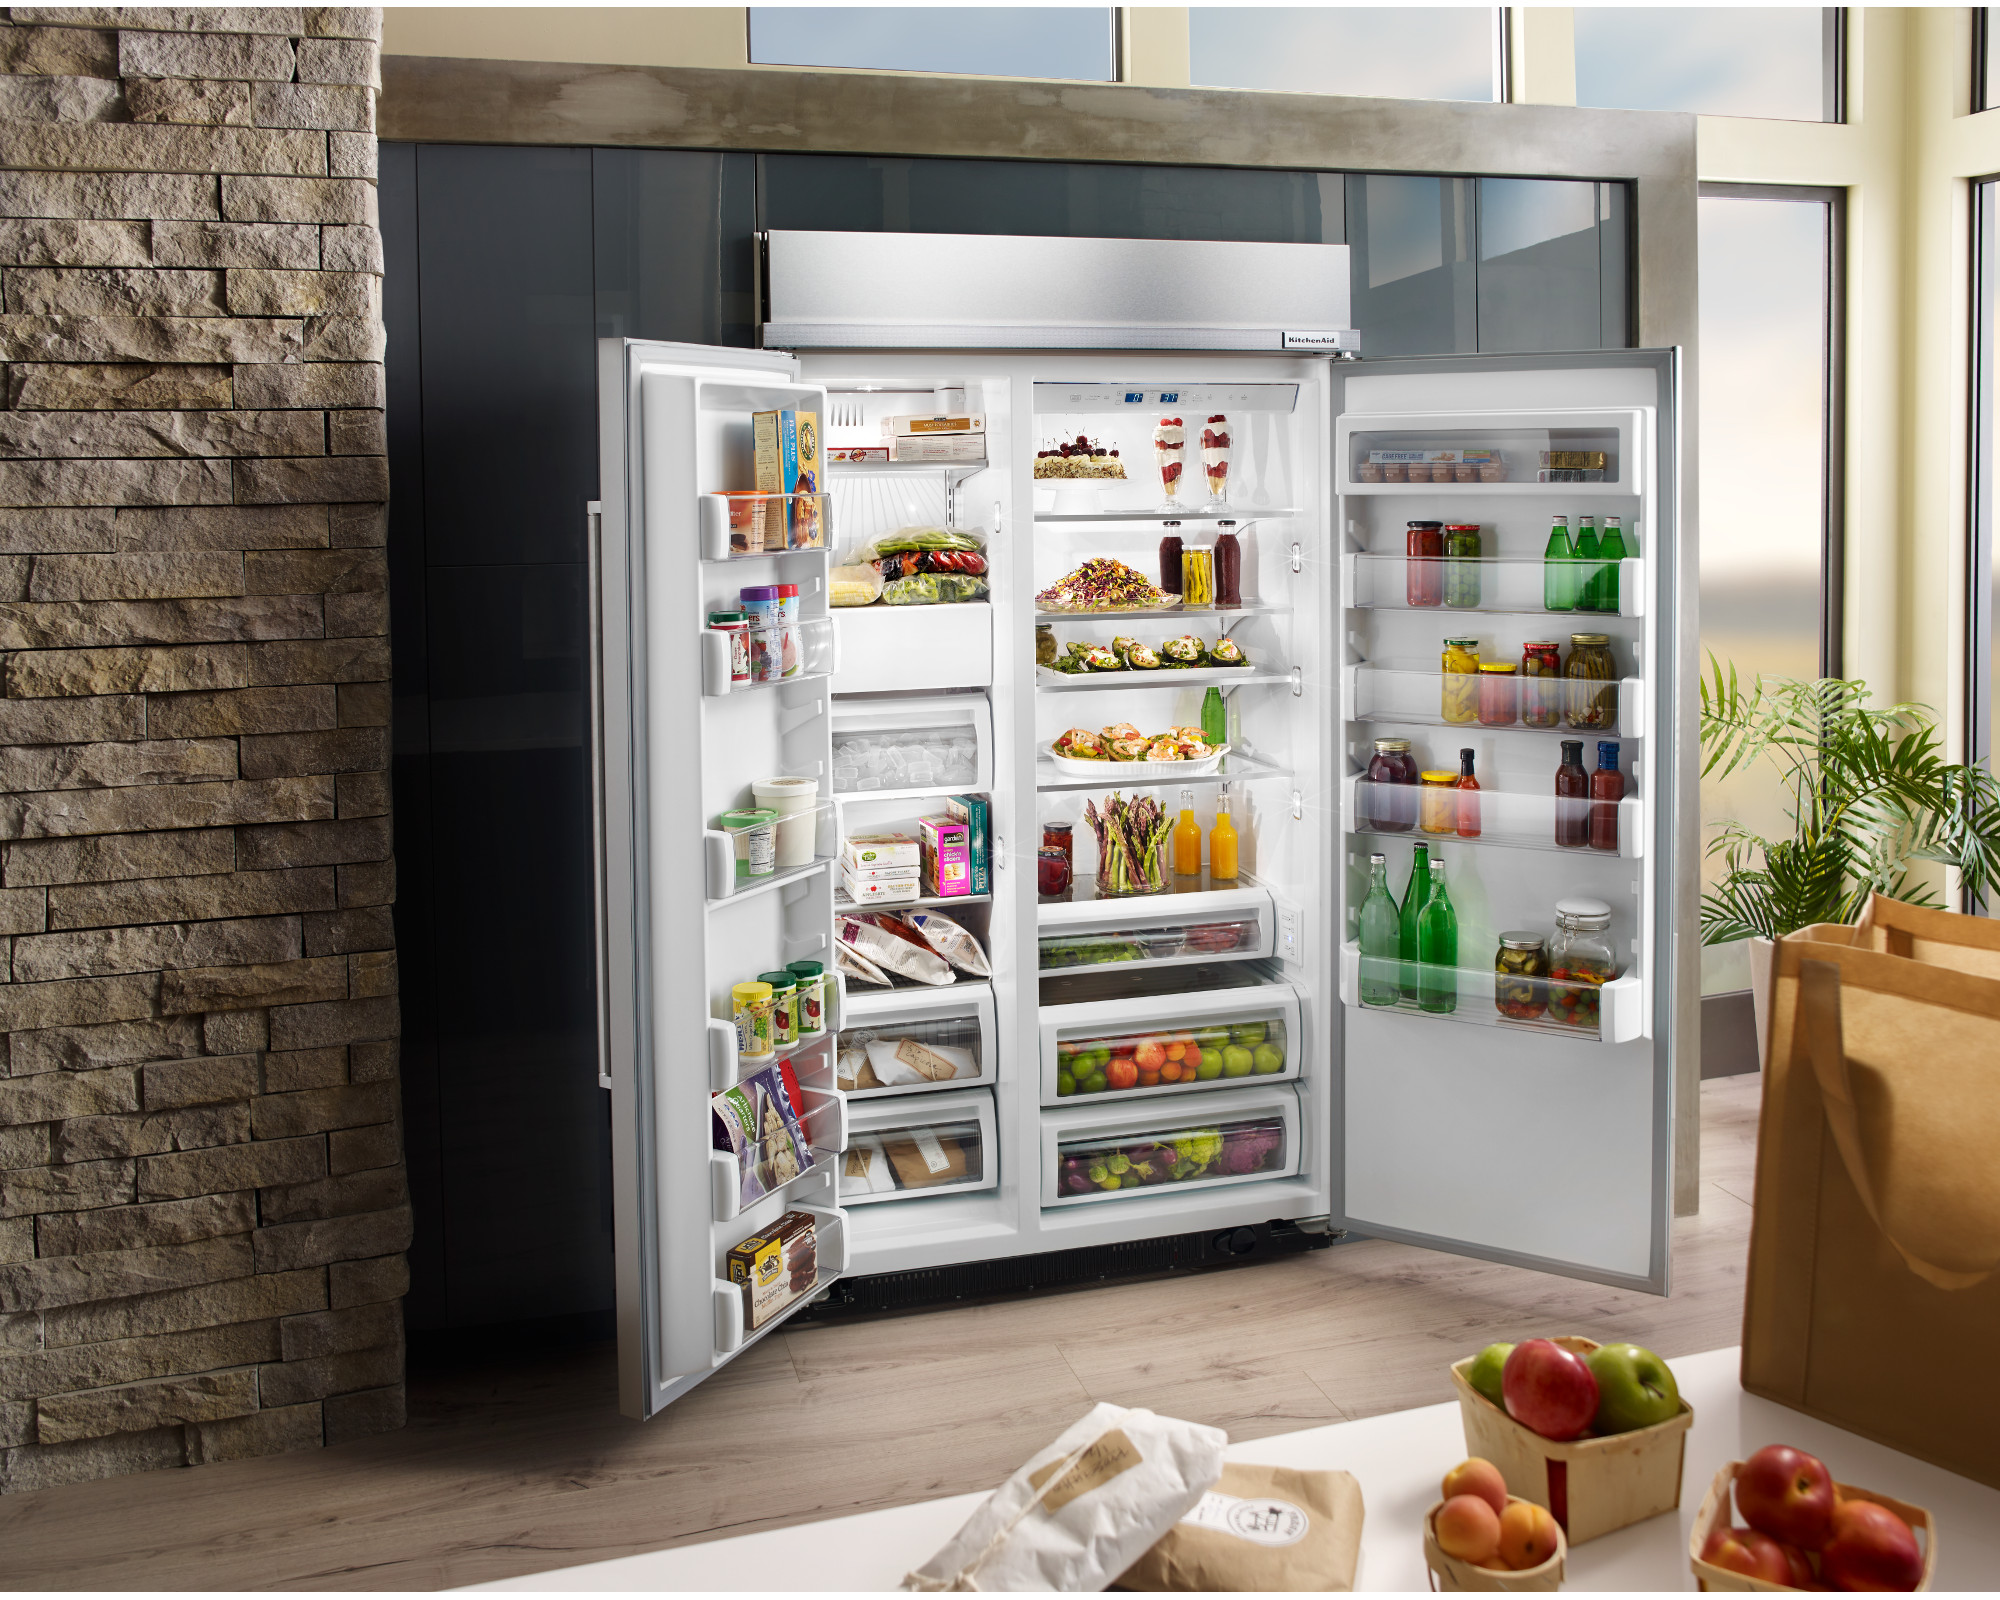 KitchenAid KBSN608ESS 30.0 cu. ft. Built-In Side-by-Side Refrigerator - Stainless Steel